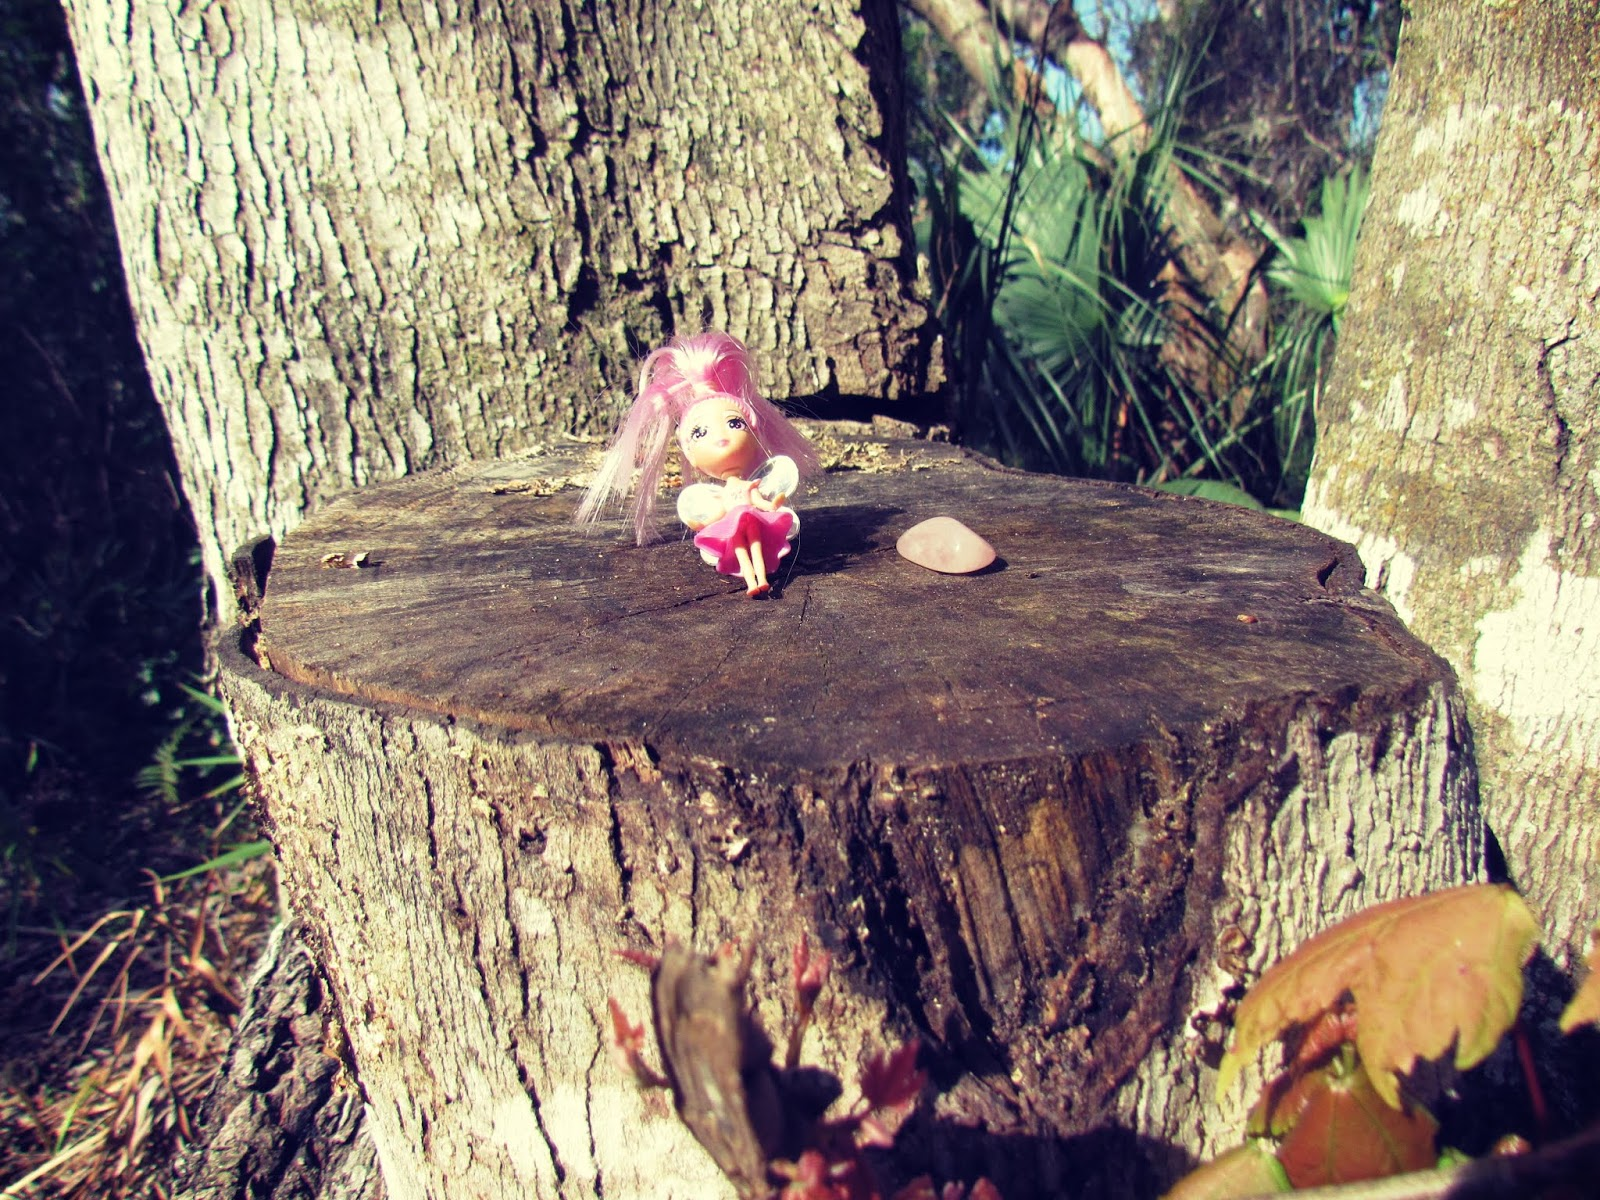 Living a slower lifestyle in the Great Outdoors as a girly nature lover